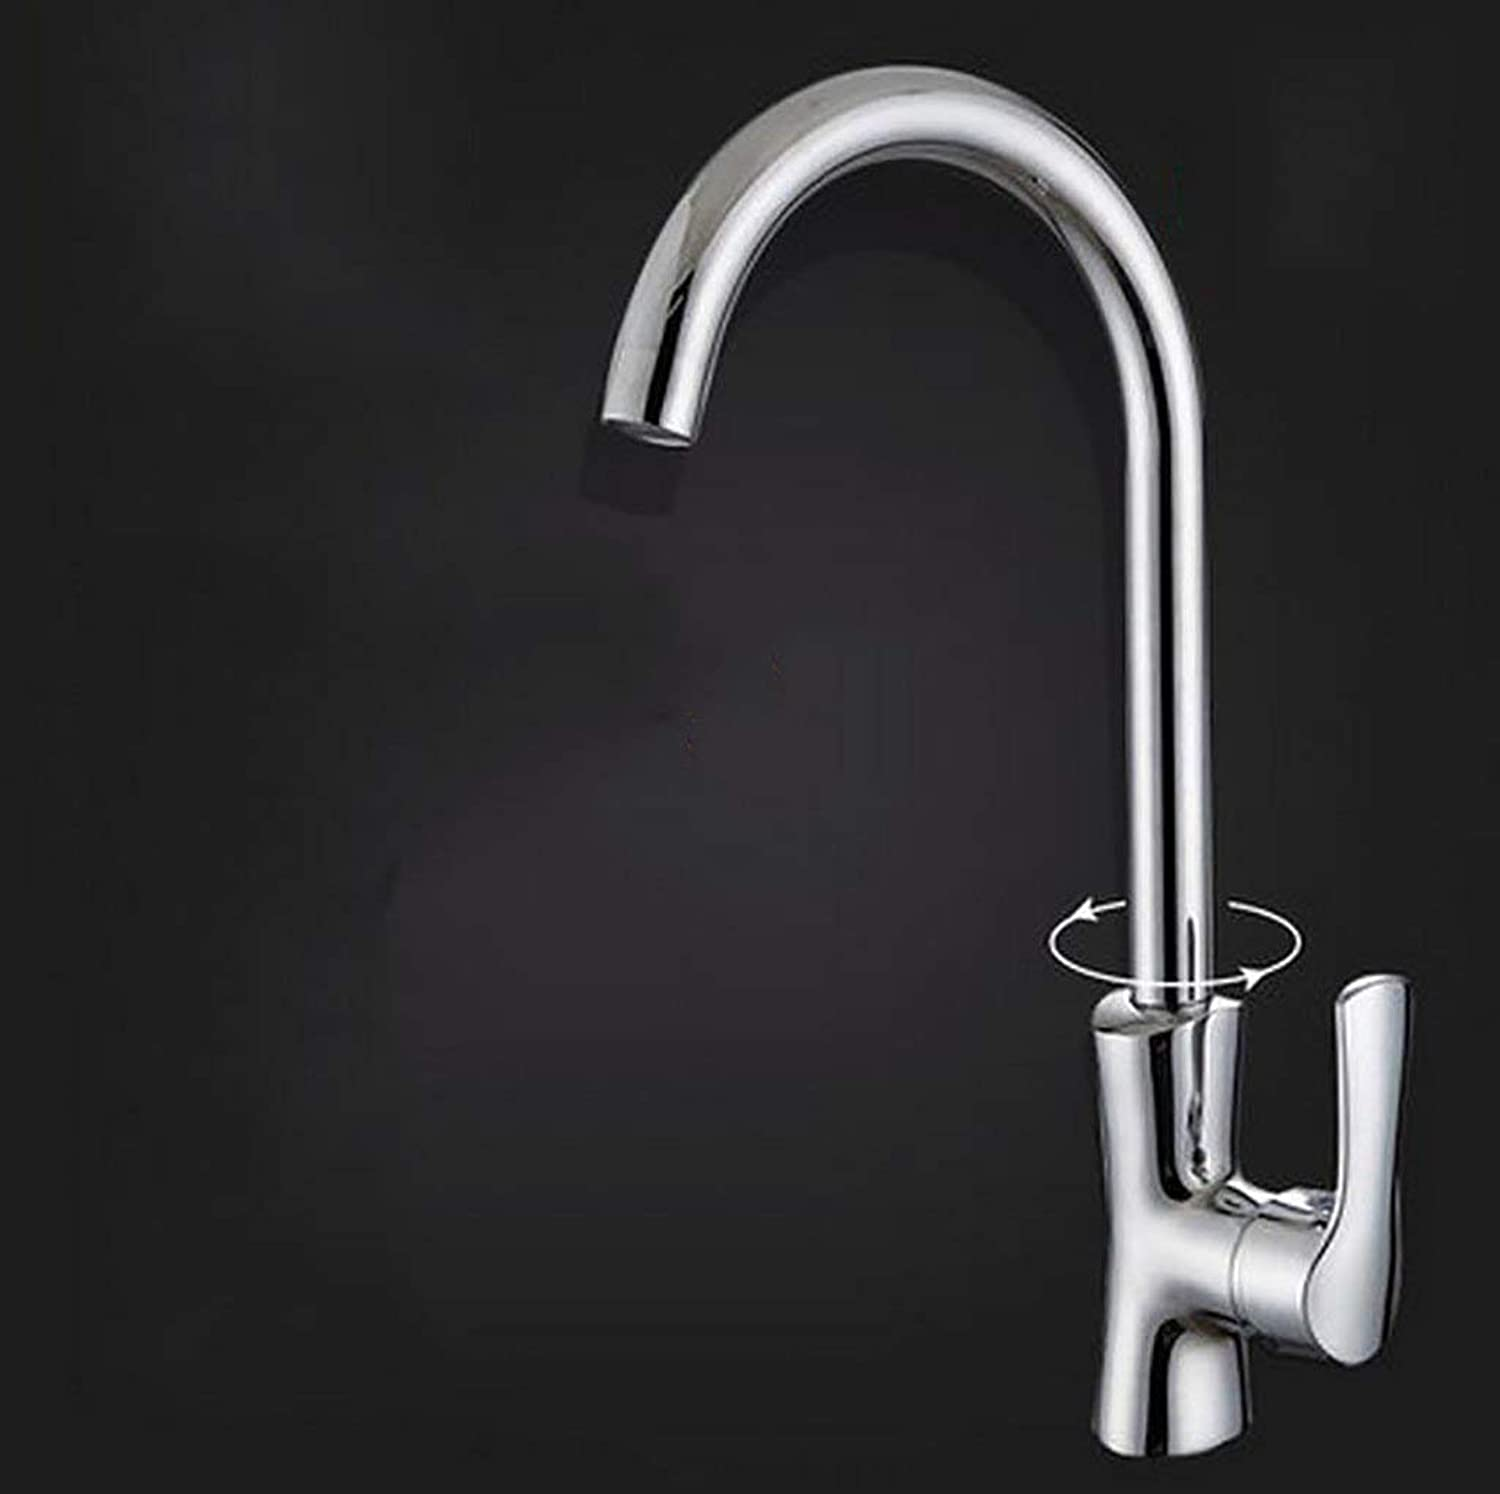 DYR Faucet Kitchen Faucets, Can Turn the Faucet, Spleen Faucet (color  5 )